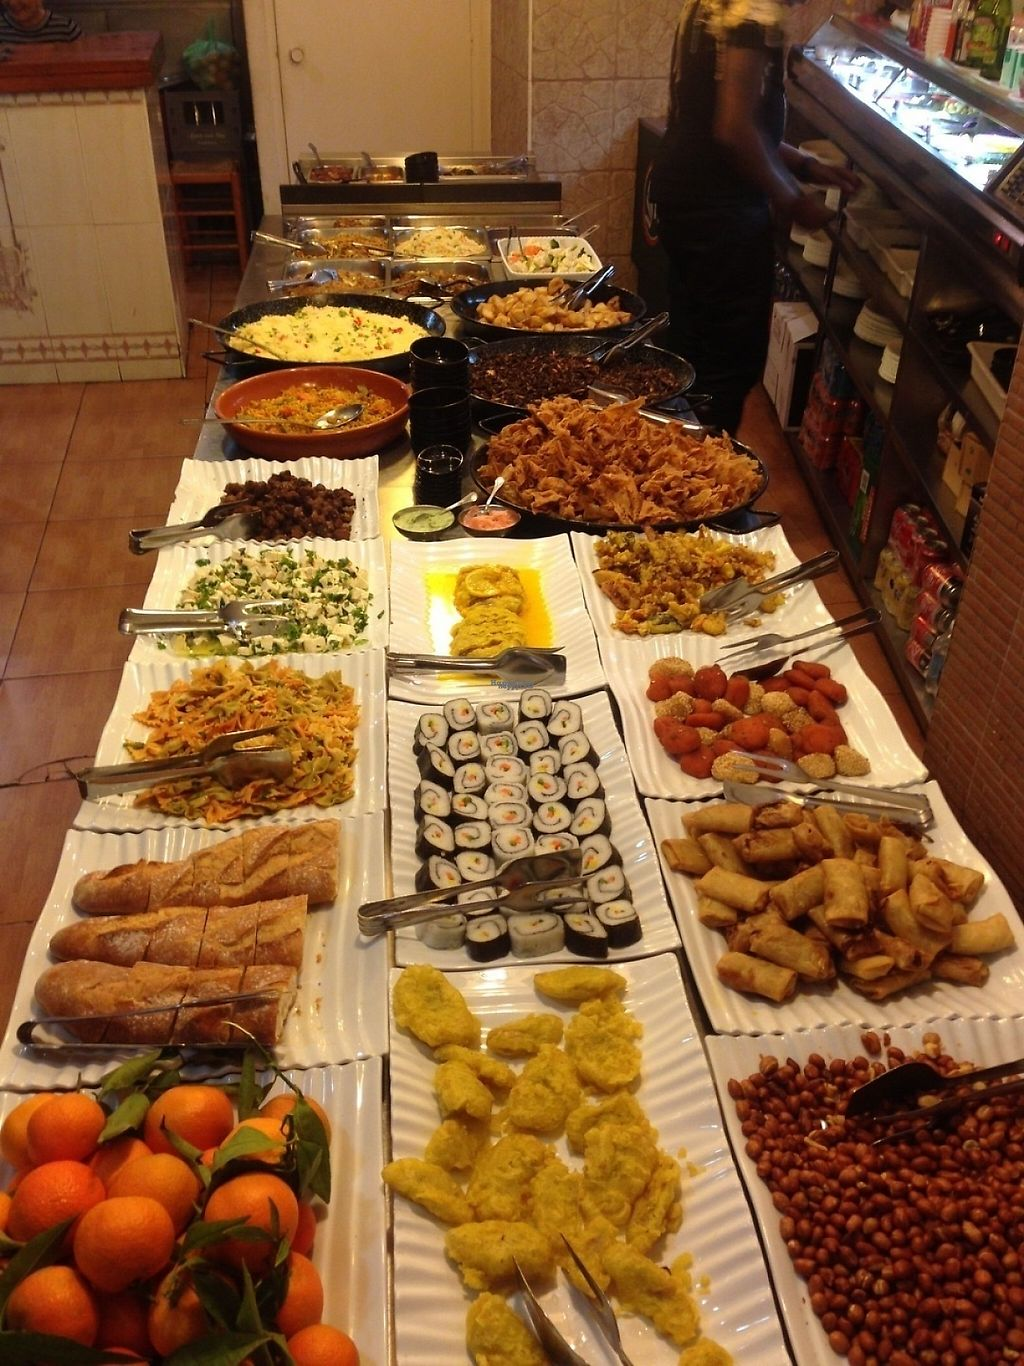 """Photo of The Nature Restaurant  by <a href=""""/members/profile/peterpunk"""">peterpunk</a> <br/>spanish/asian buffet with huge variety <br/> March 11, 2017  - <a href='/contact/abuse/image/1163/235256'>Report</a>"""